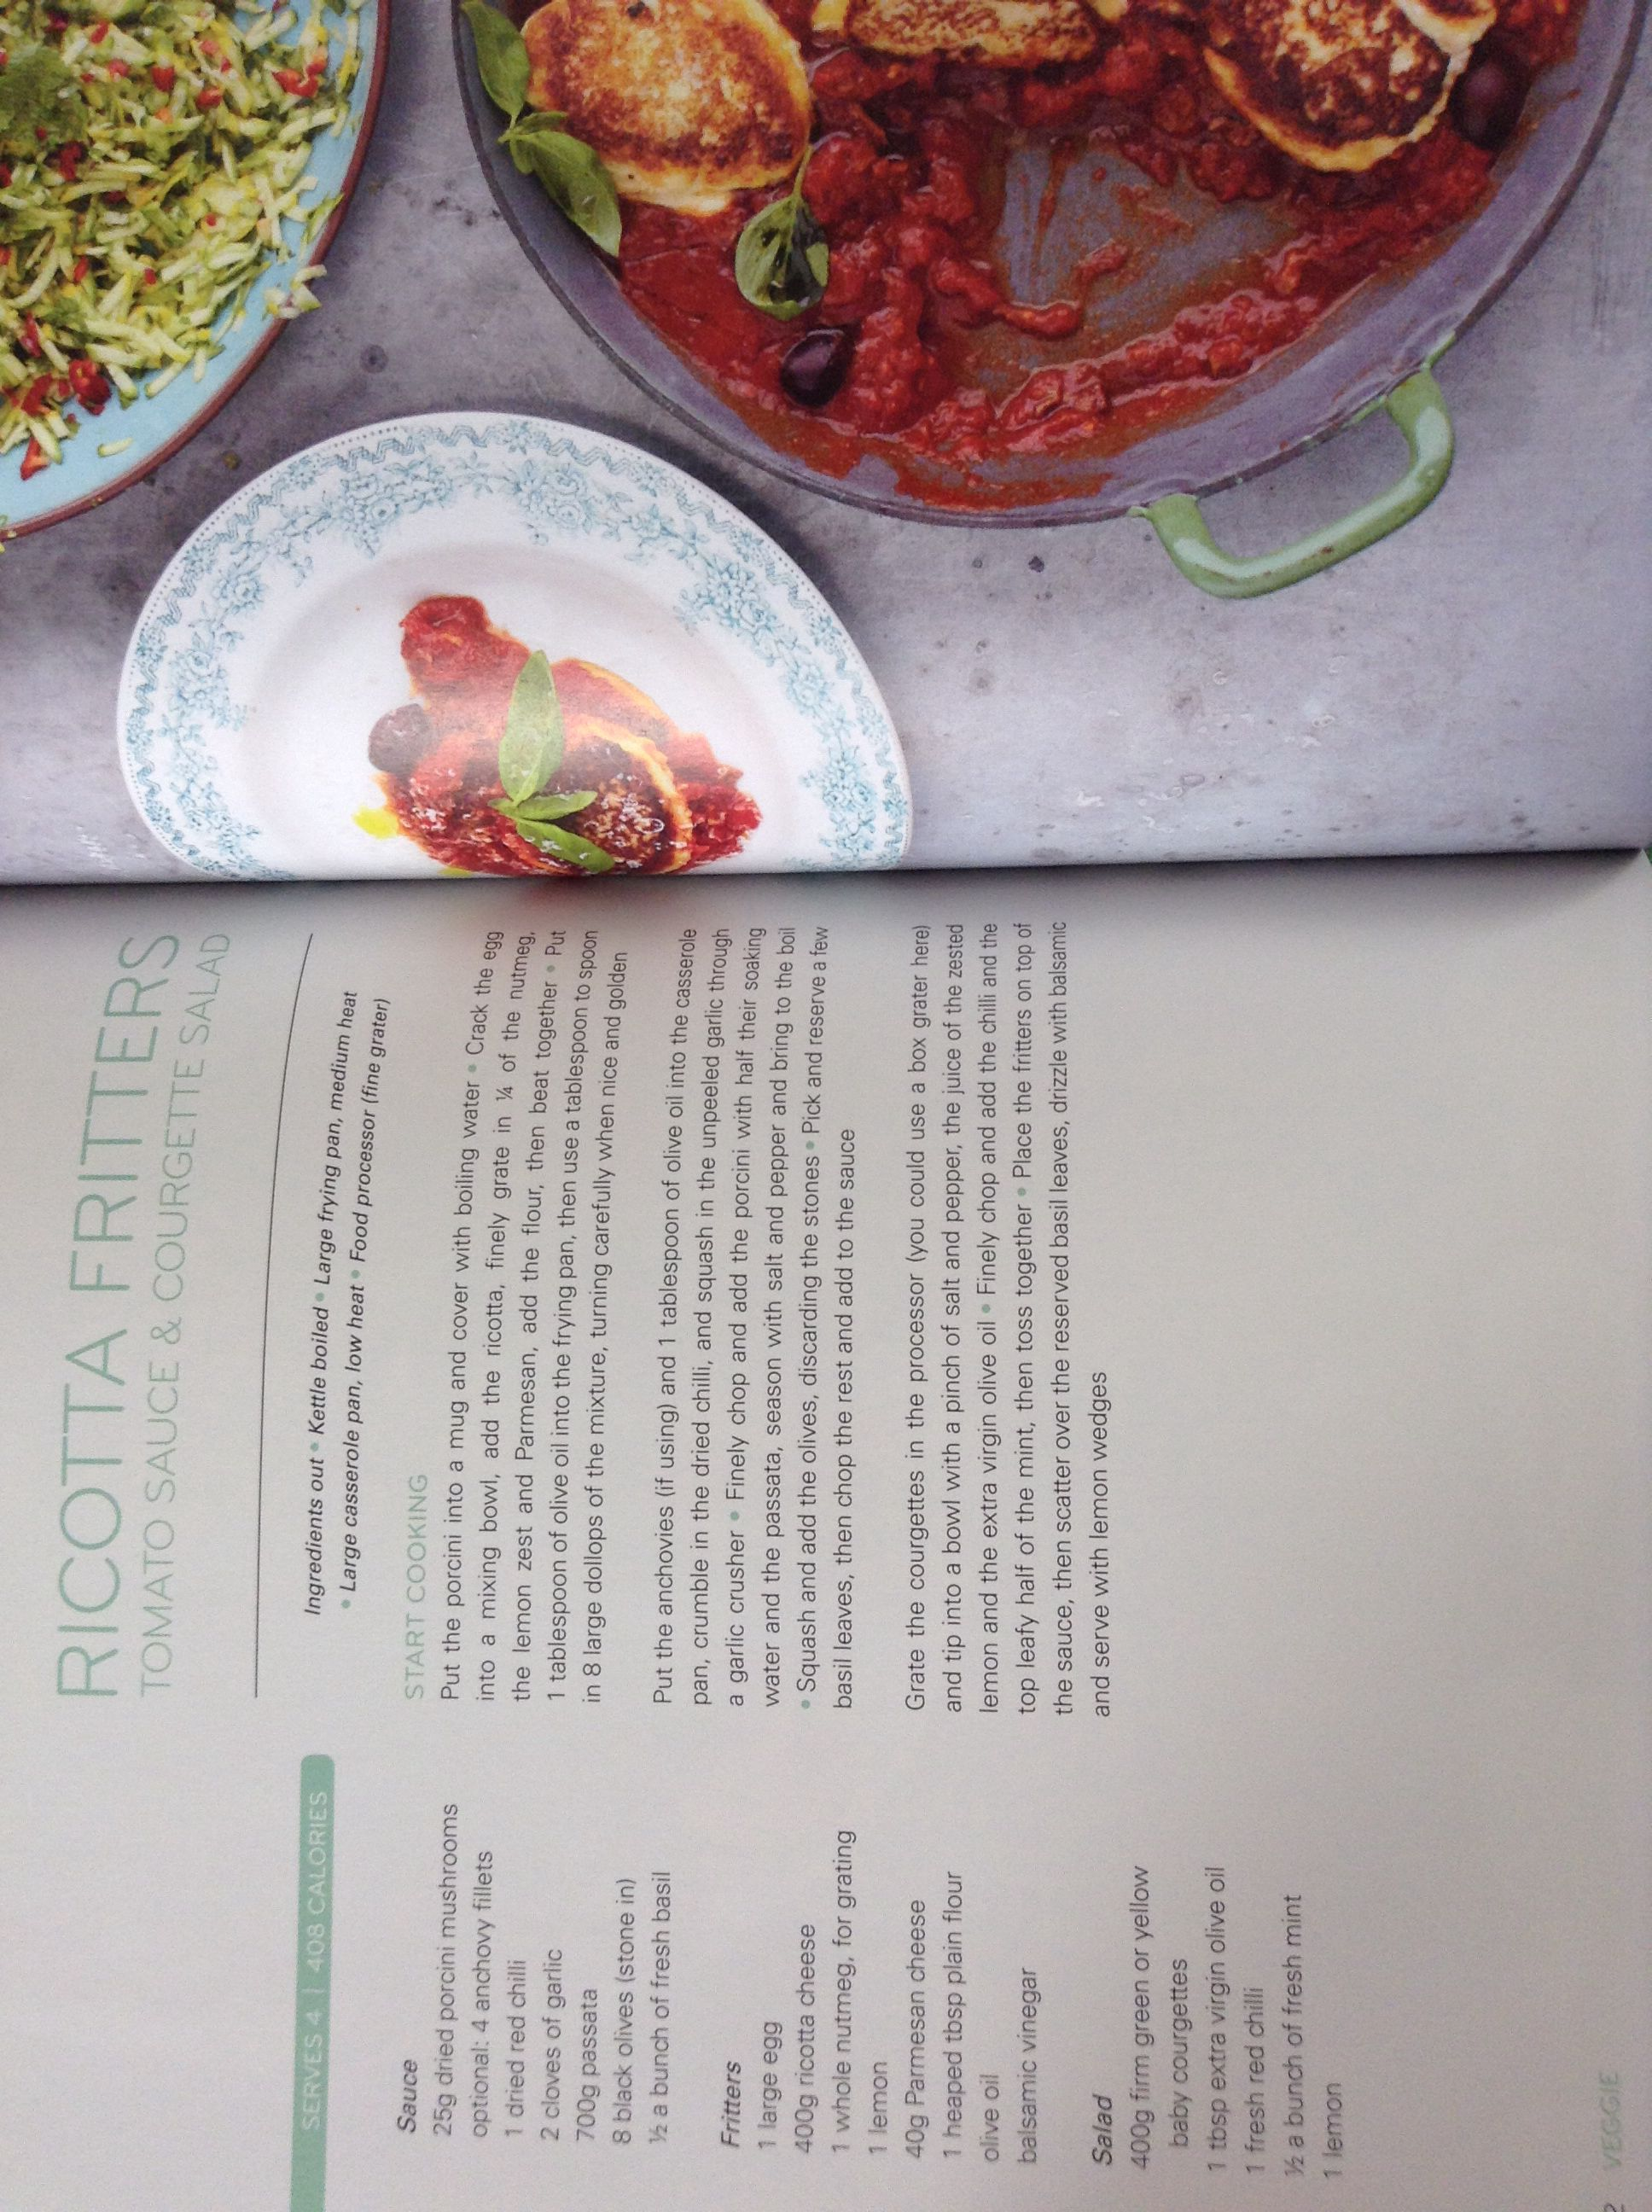 Jamie Oliver's ricotta fritters with tomato sauce and courgette salad